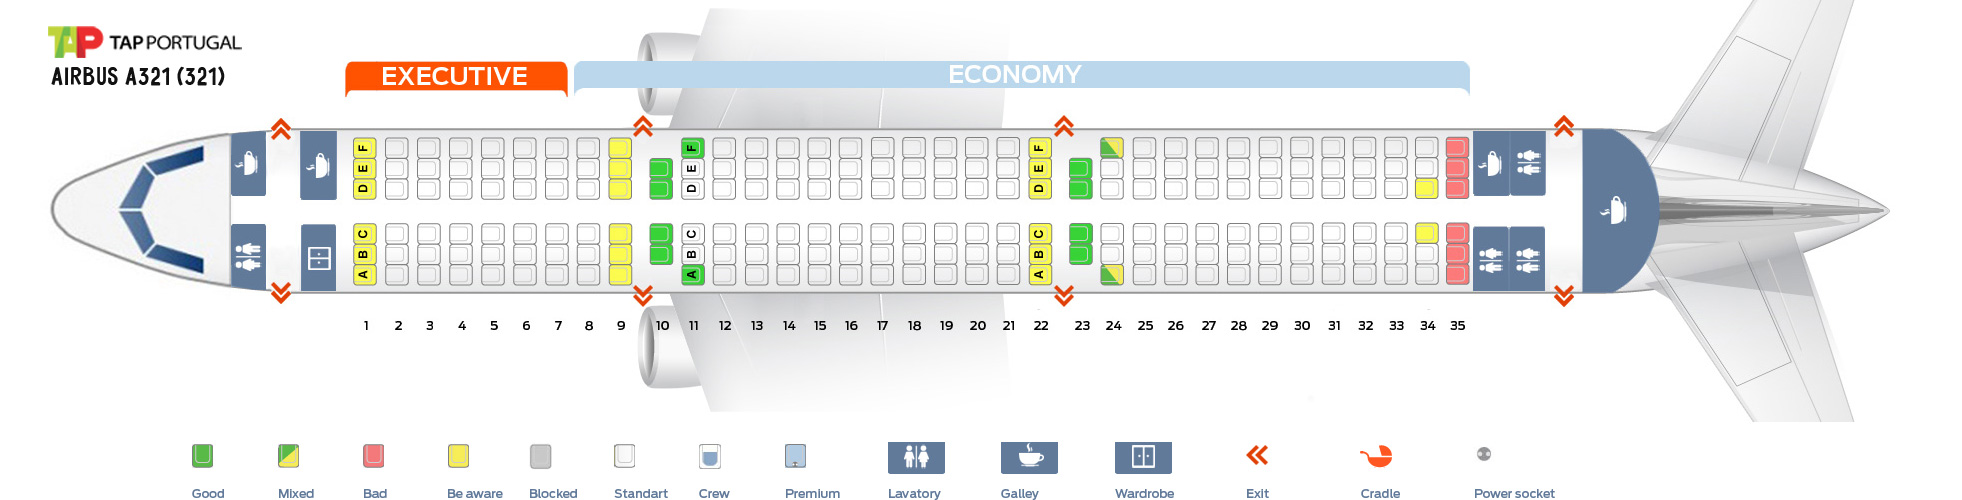 Seat Map Airbus A321-200 Tap Portugal